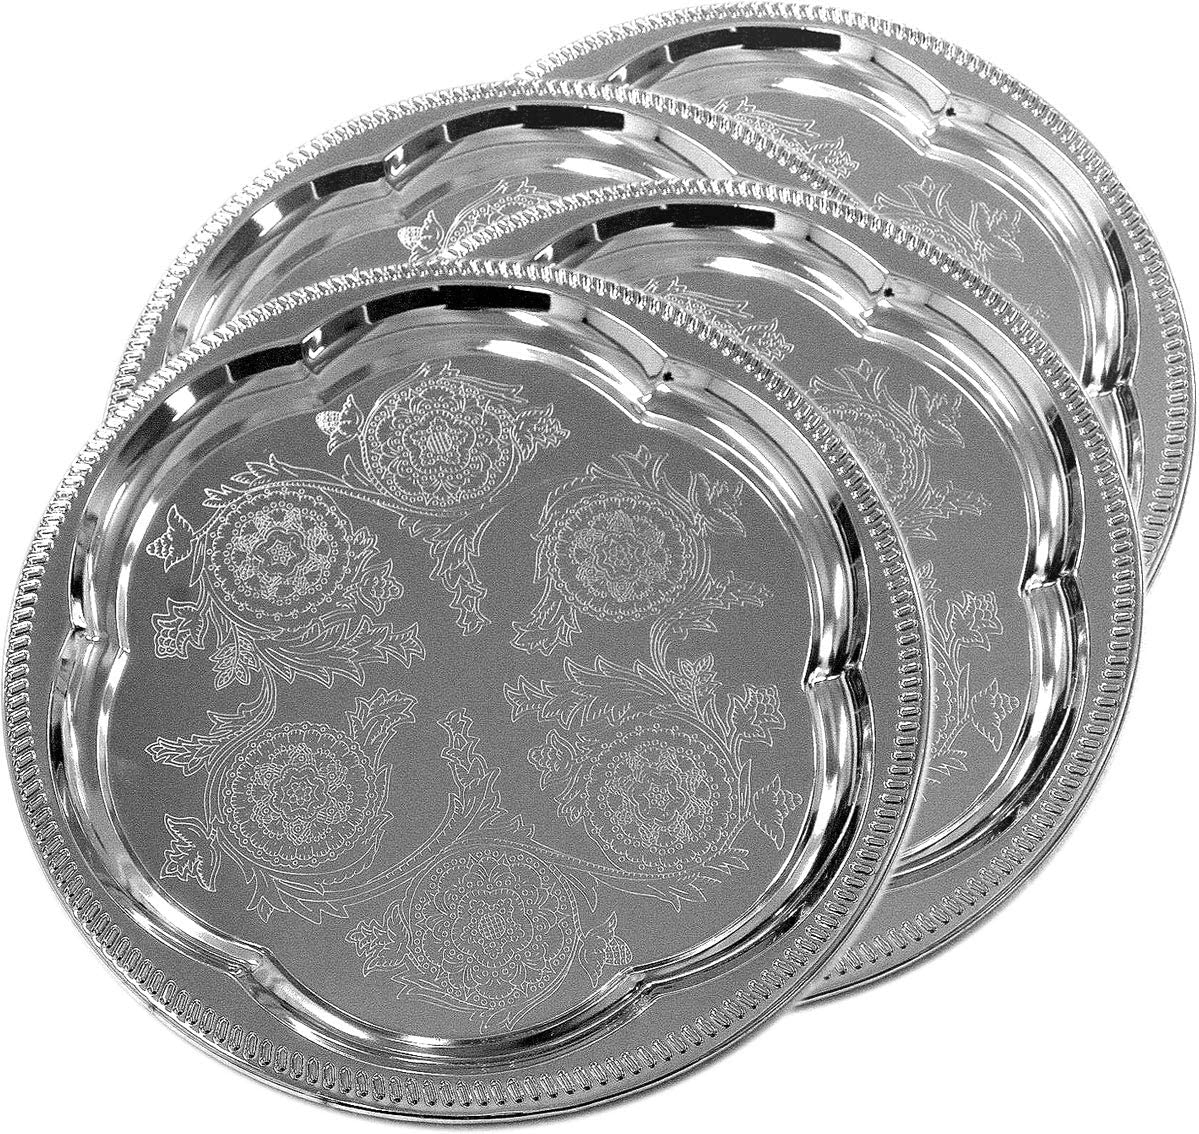 Maro Megastore (Pack of 4) 11.8-Inch Elegant Round Floral Pattern Engraved Catering Chrome Plated Serving Plate Mirror Tray Platter Tableware Decor Holiday Wedding Birthday Party (Small) T226s-4pk